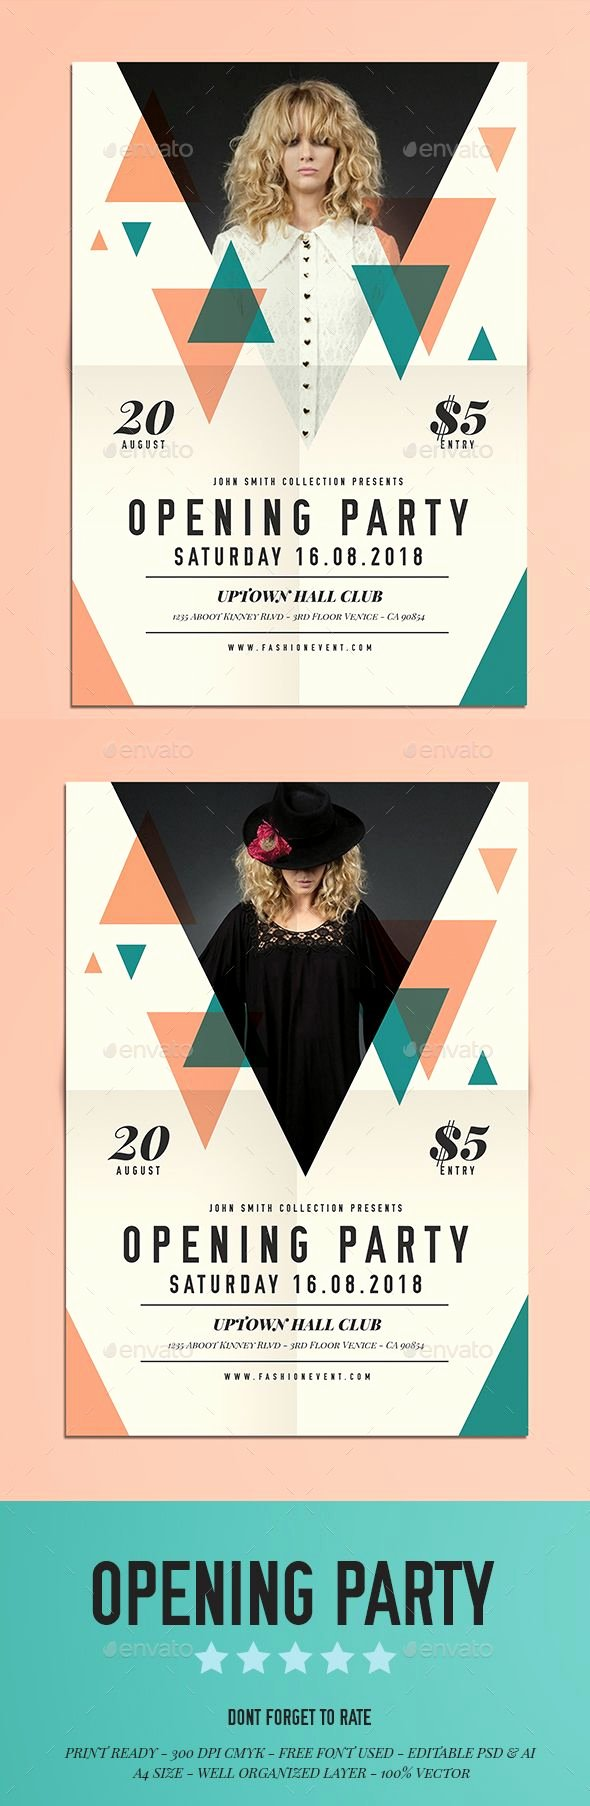 Party Poster Ideas Best Of 25 Best Ideas About event Flyers On Pinterest